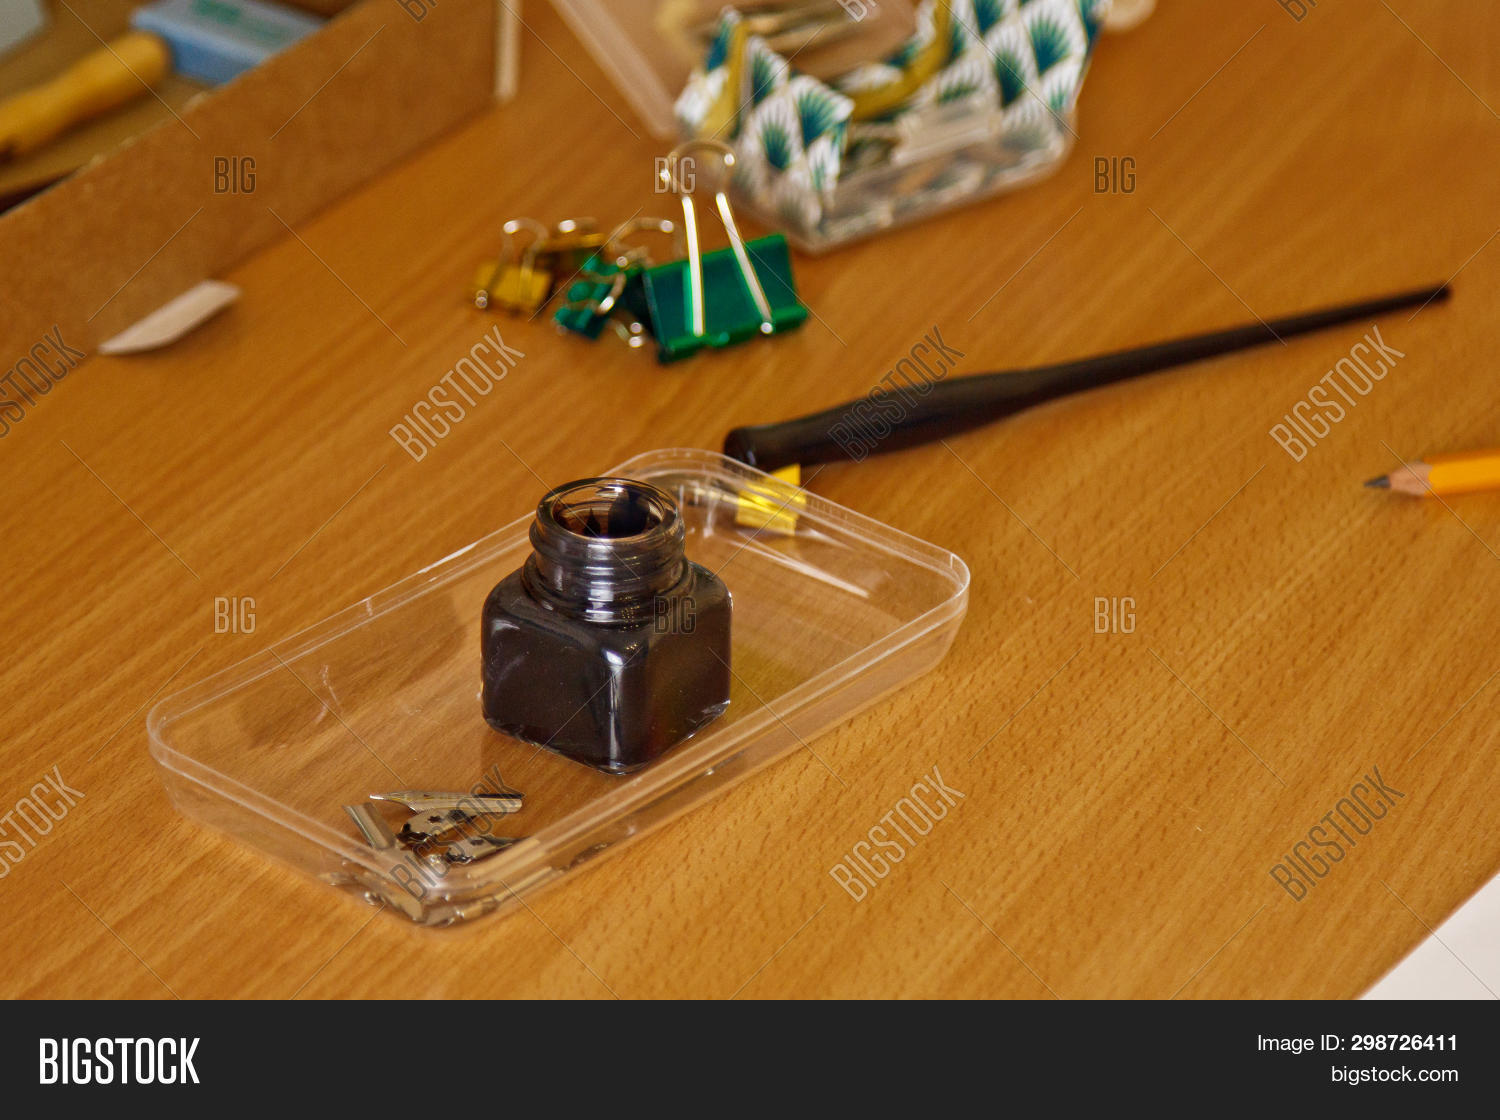 Inkwell Stationery On Image & Photo (Free Trial) | Bigstock on